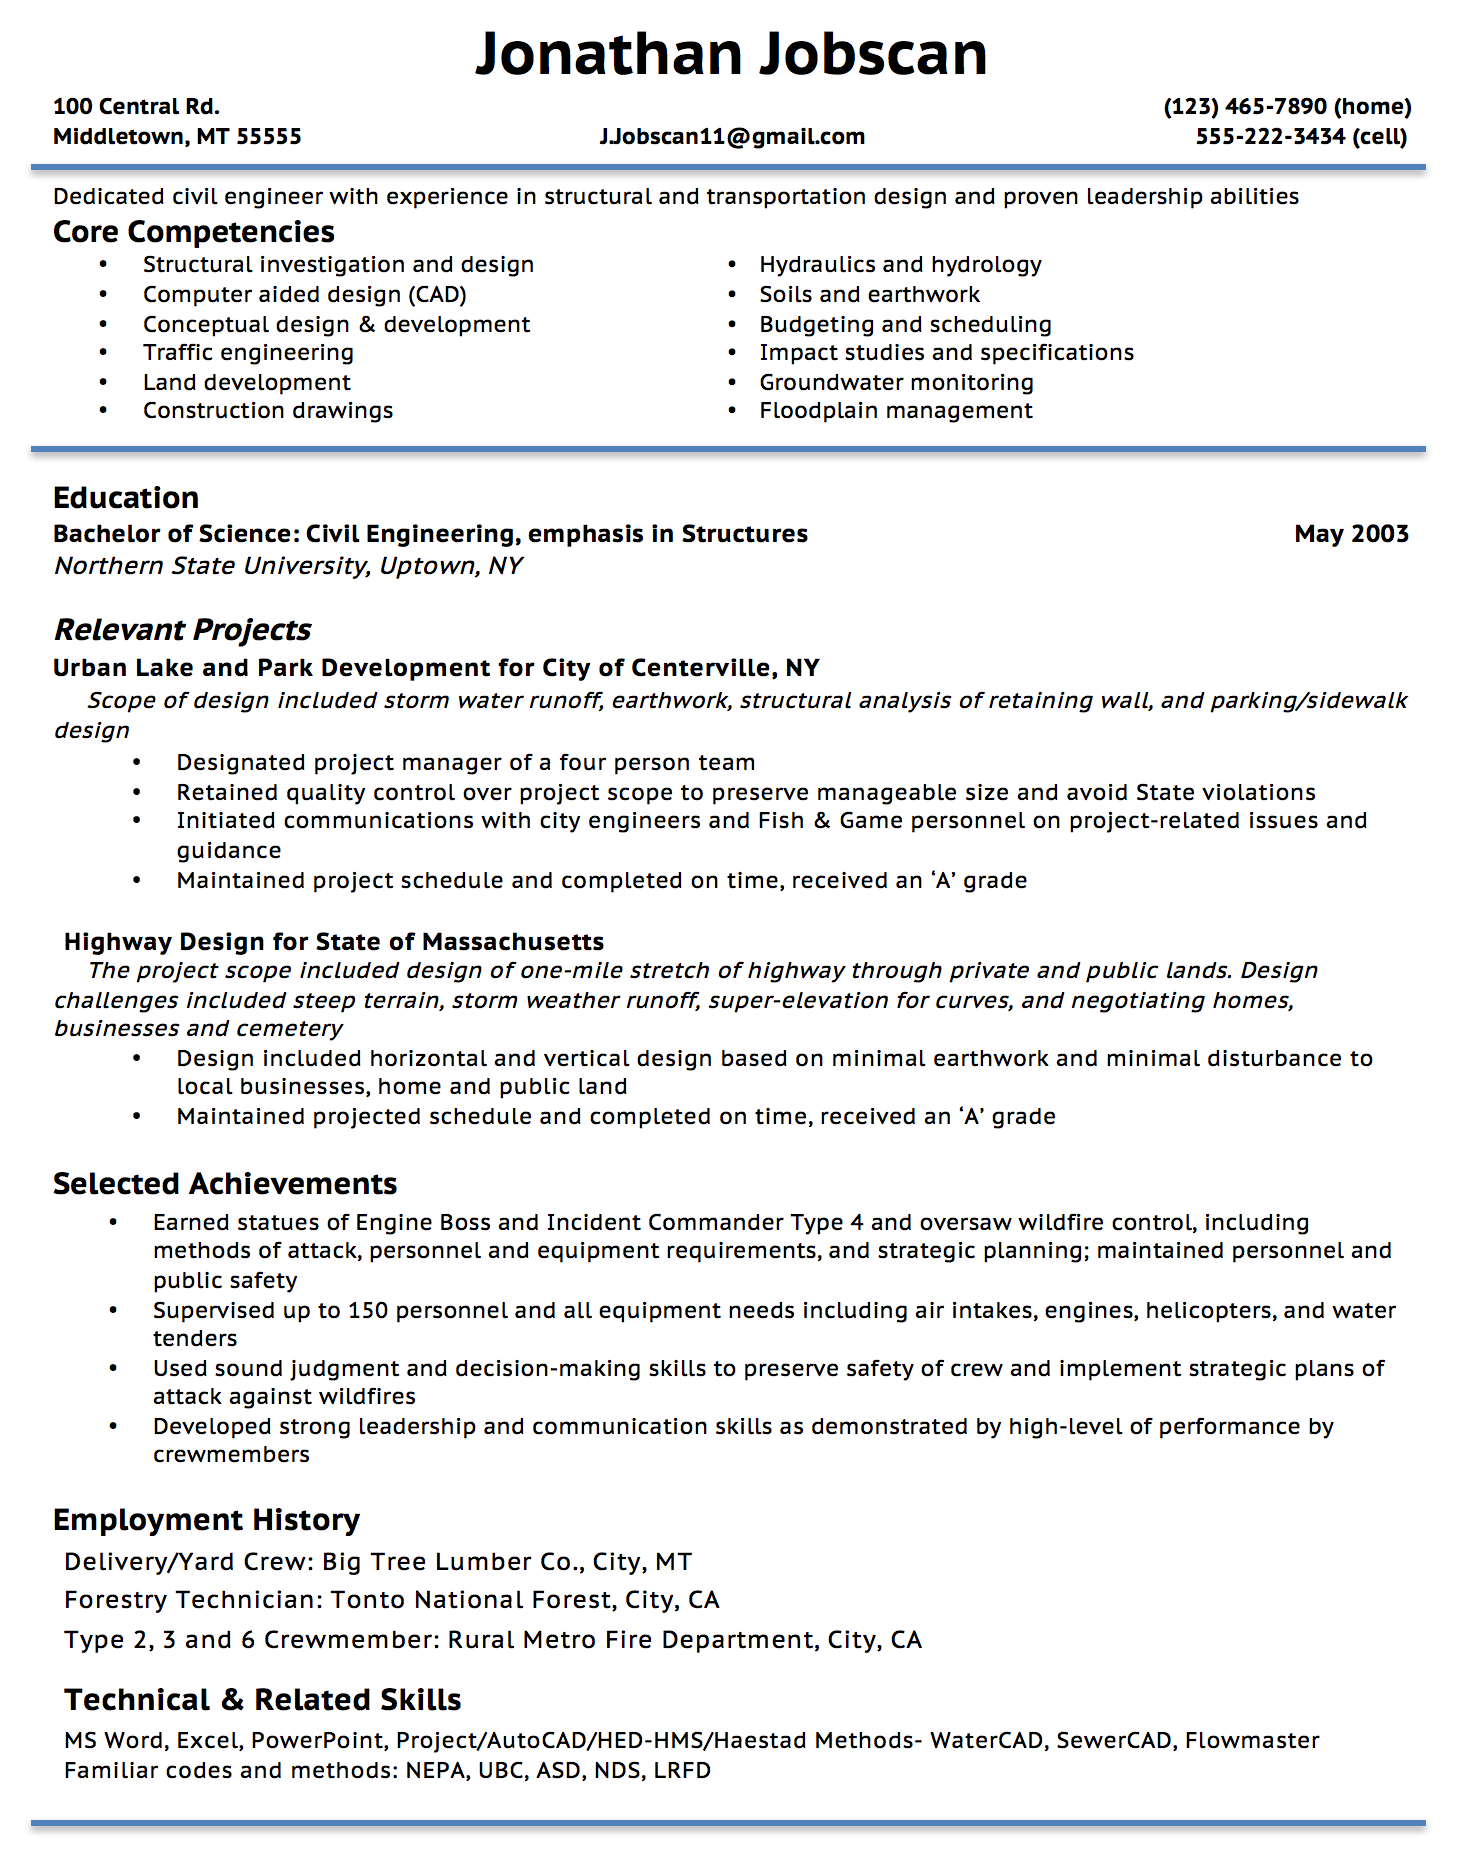 Opposenewapstandardsus  Inspiring Resume Writing Guide  Jobscan With Licious Example Of A Functional Resume Format With Delightful Resume Current Job Also Veterinary Receptionist Resume In Addition List References On Resume And Resume Sales Skills As Well As Line Cook Job Description For Resume Additionally Highschool Student Resume From Jobscanco With Opposenewapstandardsus  Licious Resume Writing Guide  Jobscan With Delightful Example Of A Functional Resume Format And Inspiring Resume Current Job Also Veterinary Receptionist Resume In Addition List References On Resume From Jobscanco